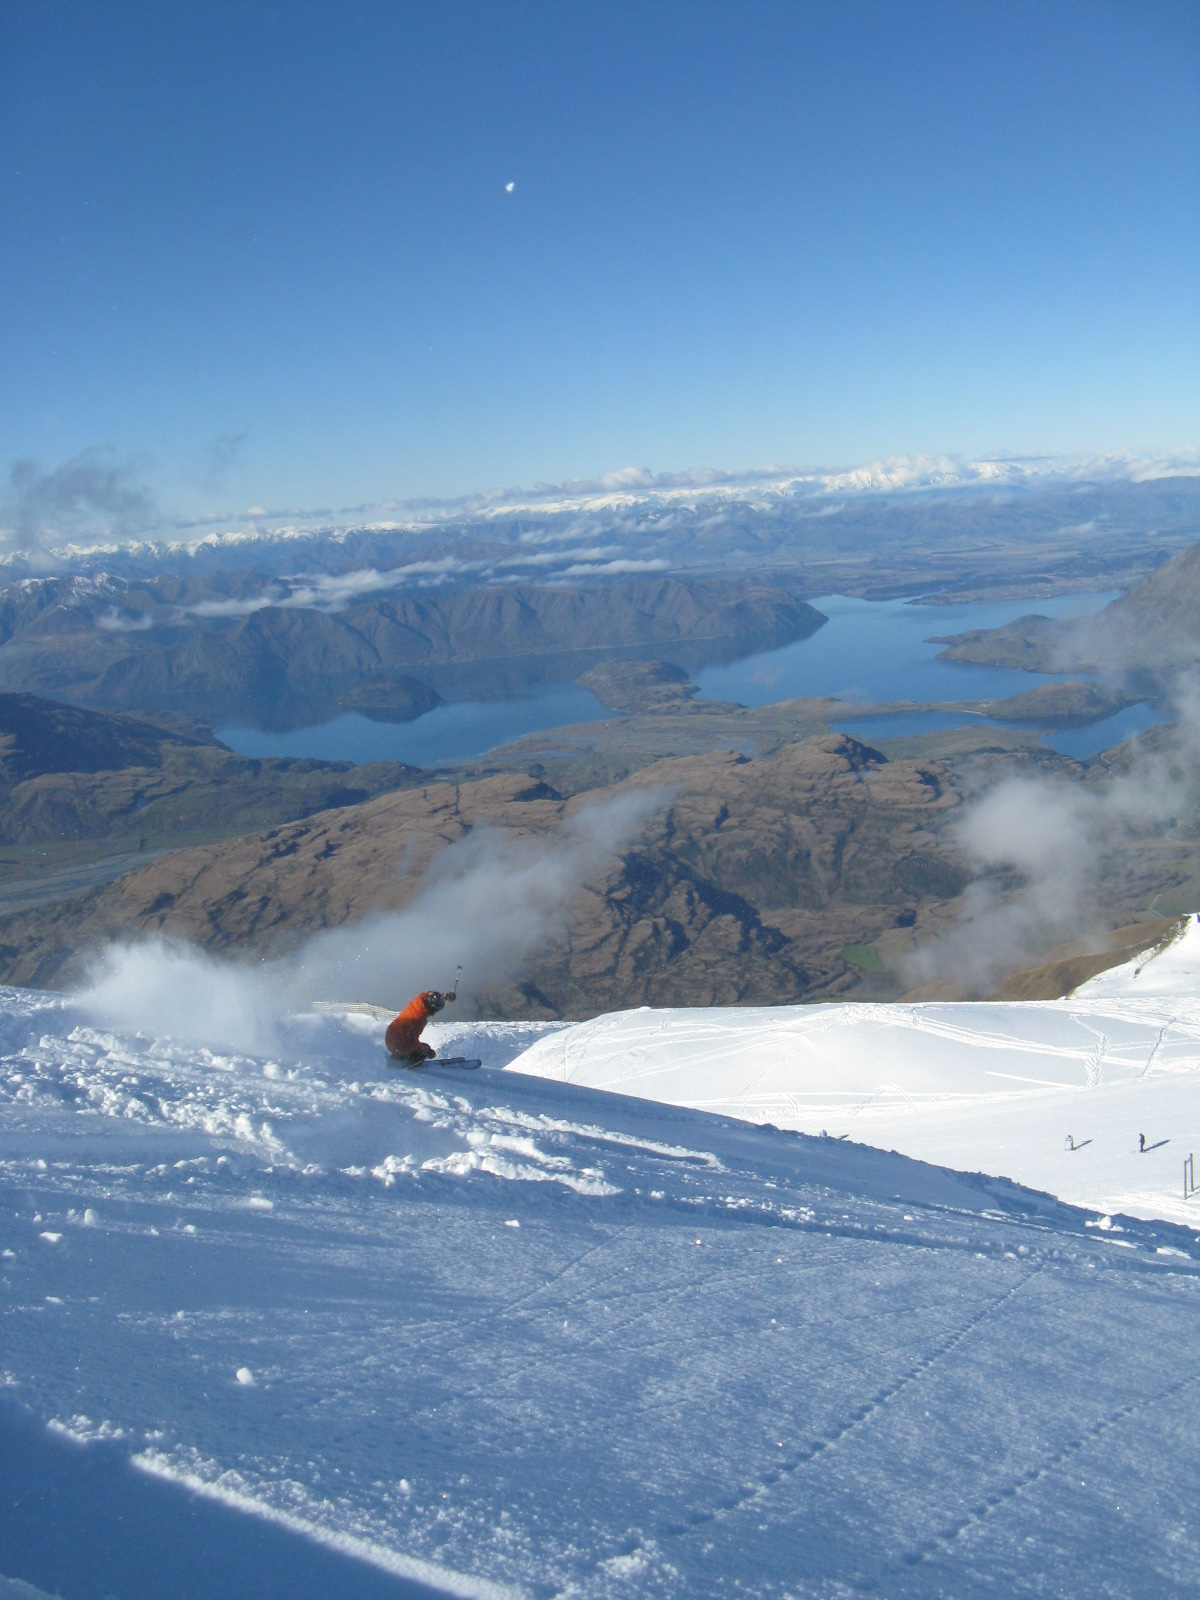 More powder skiing at Treble Cone in New Zealand